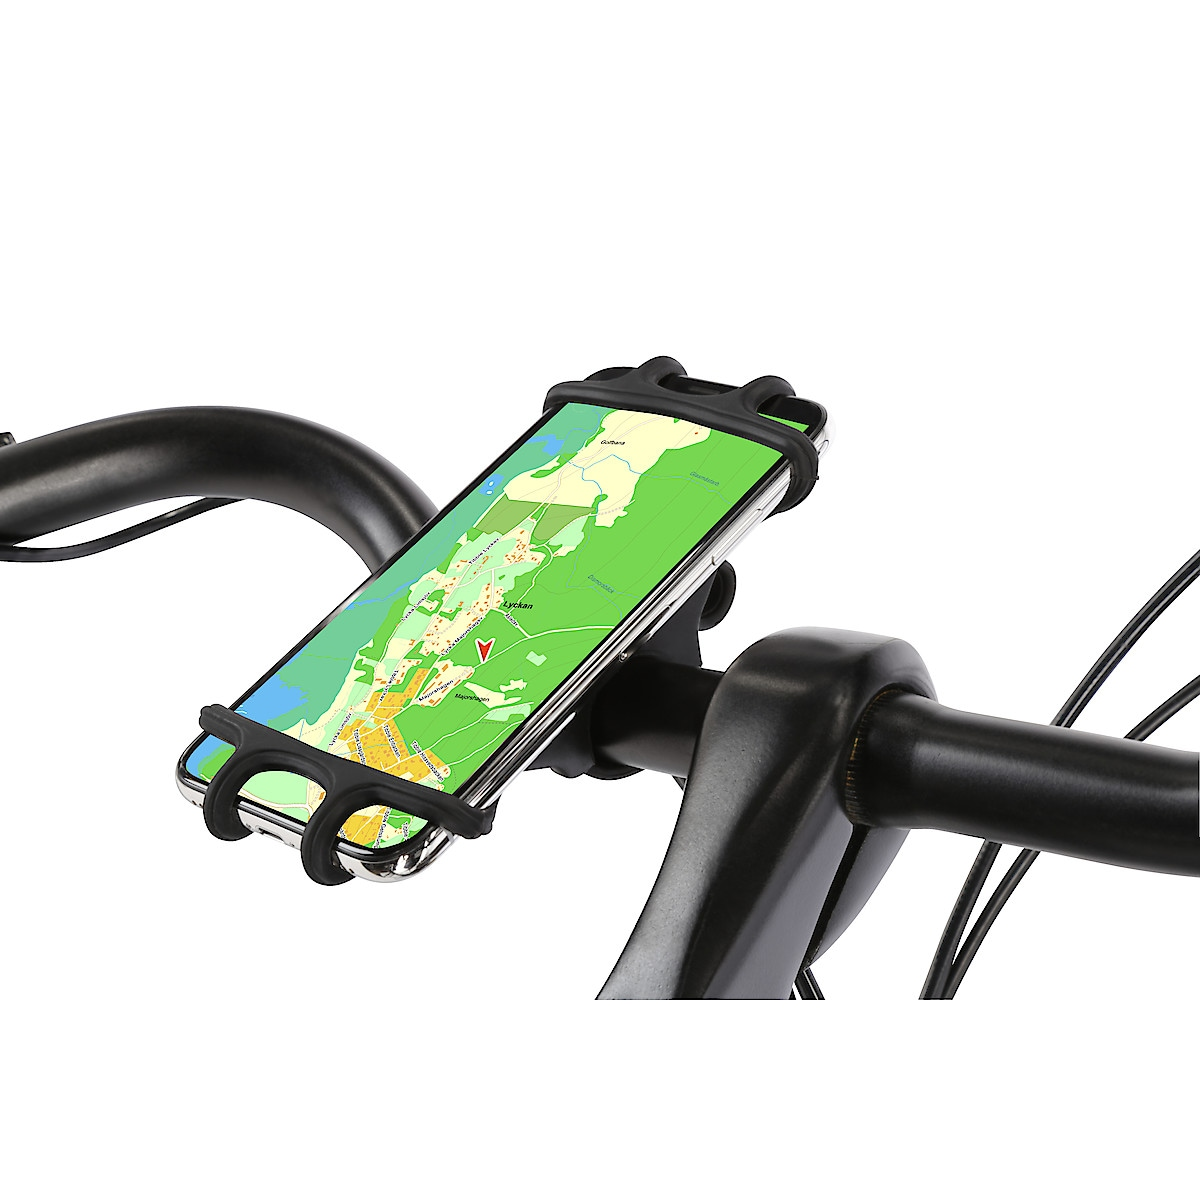 Celly Easybike mobilholder for sykkel